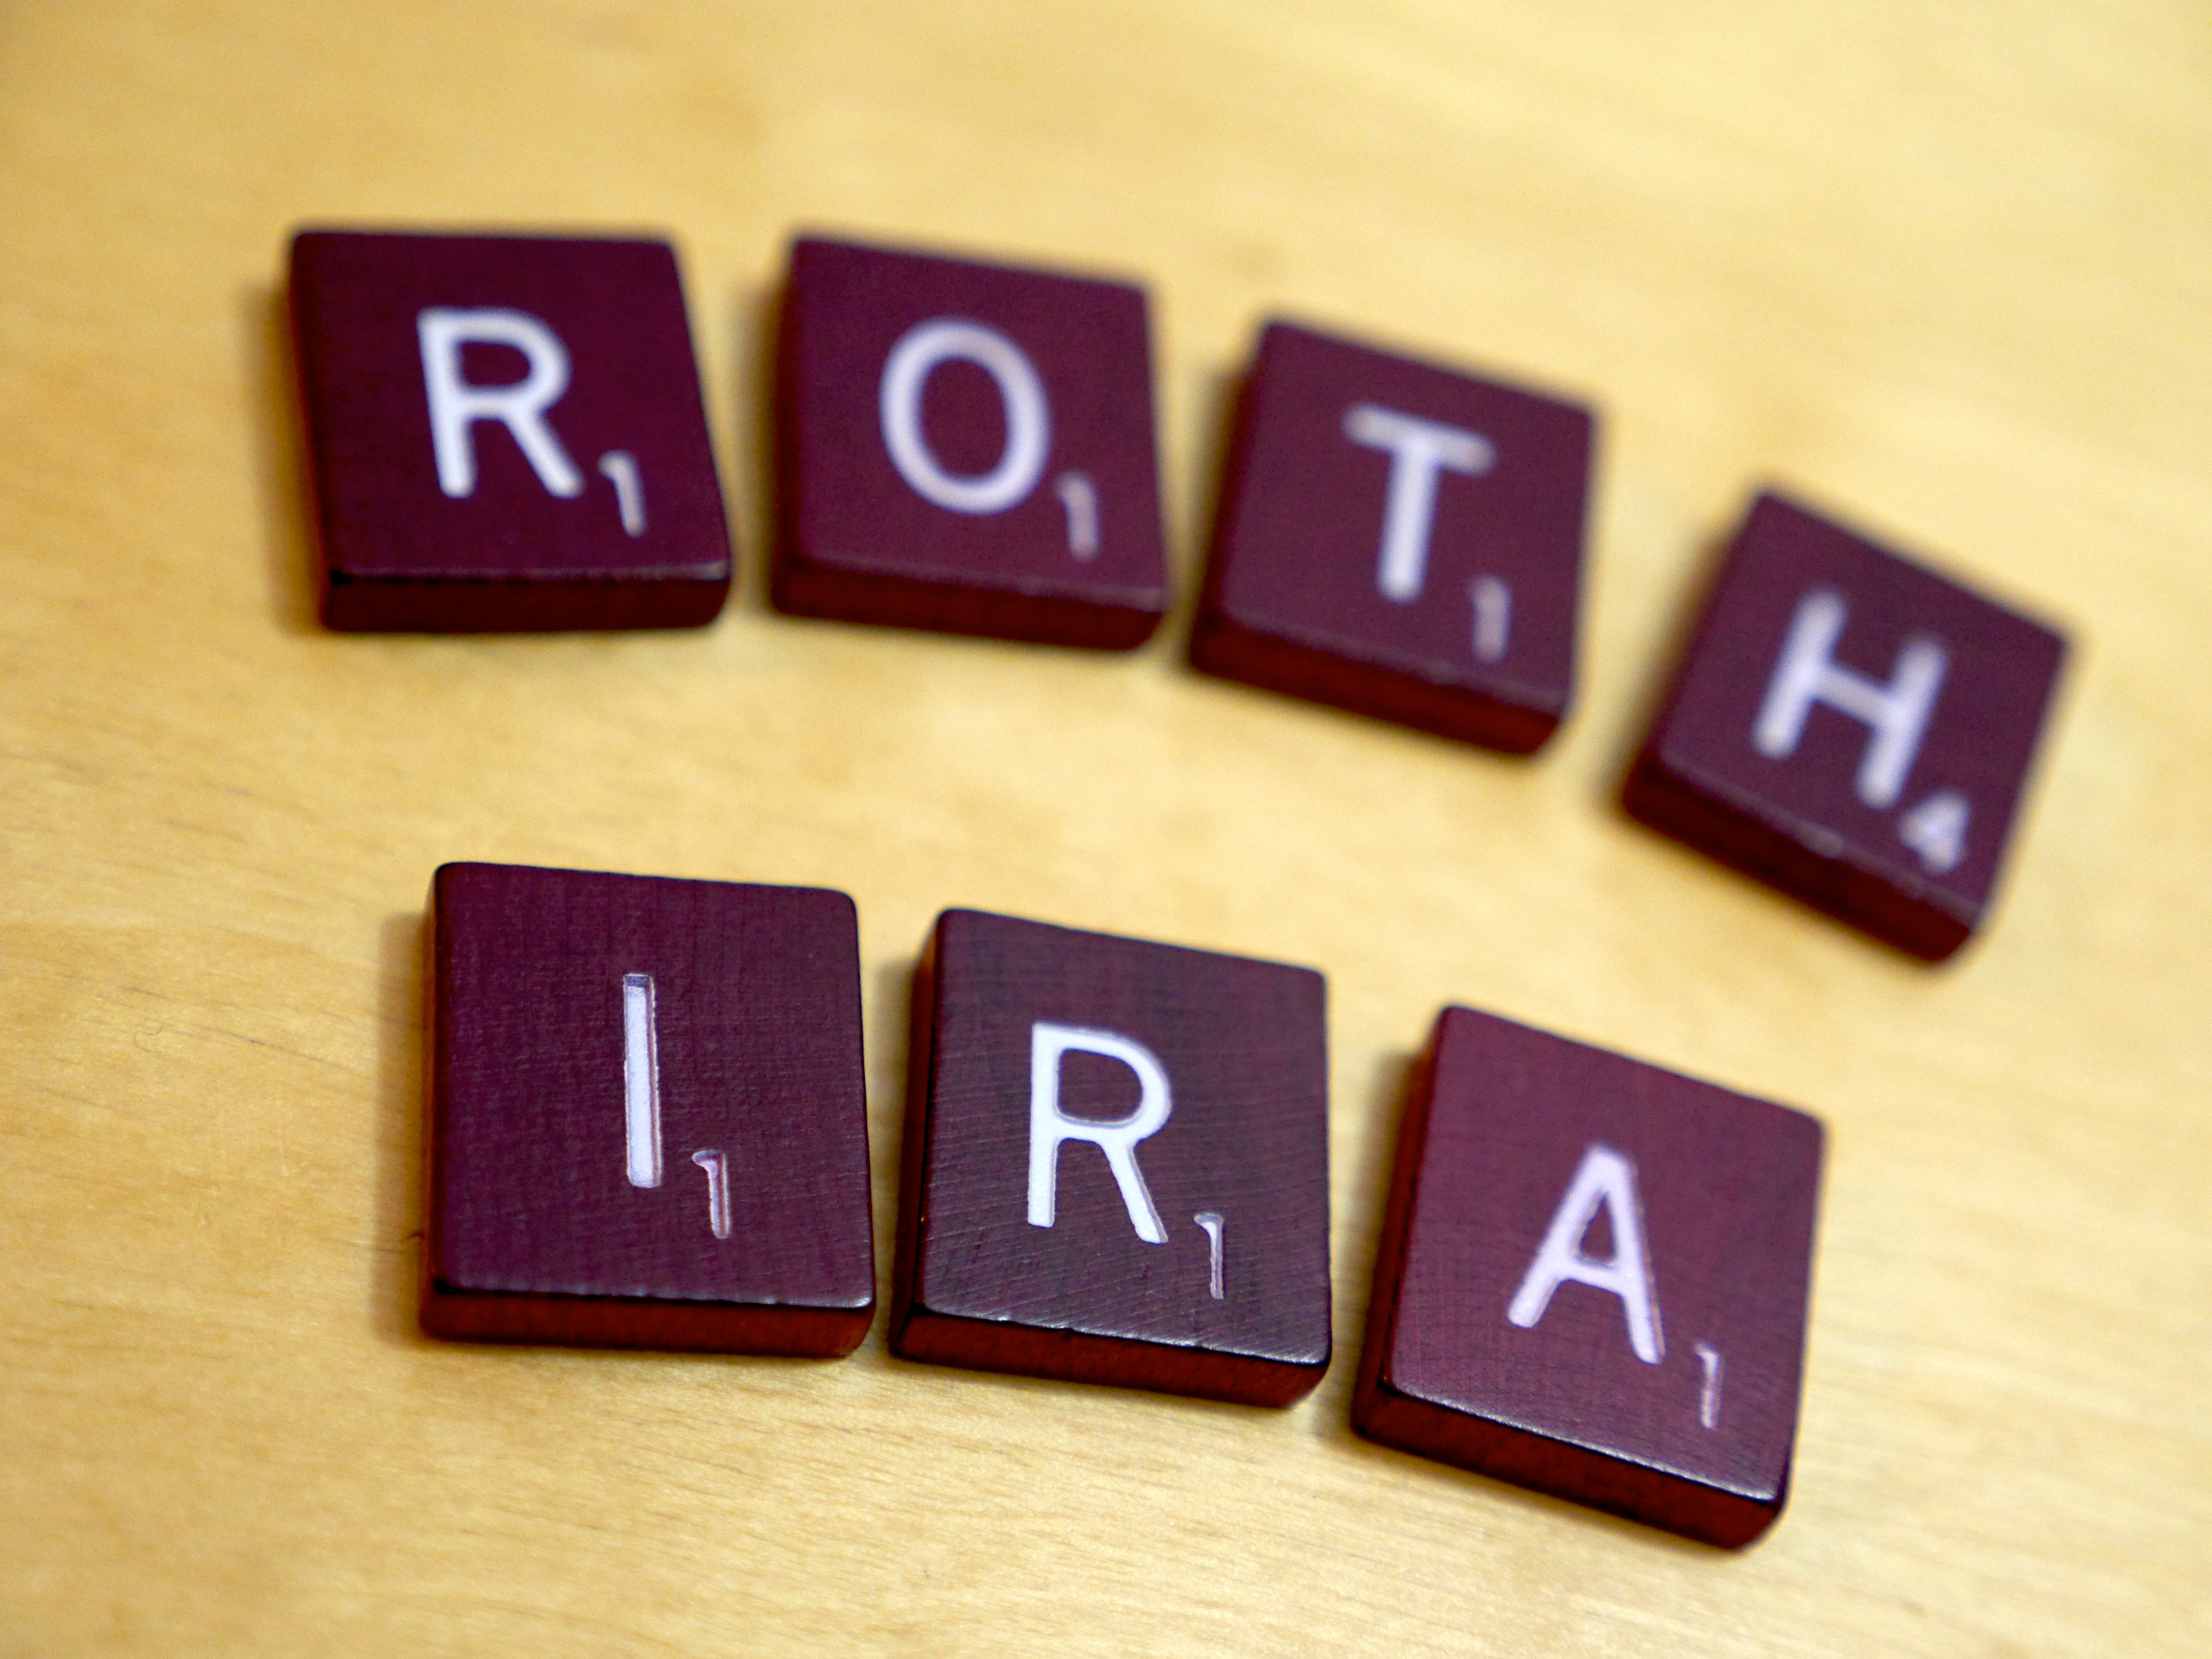 6 Benefits of Roth IRAs